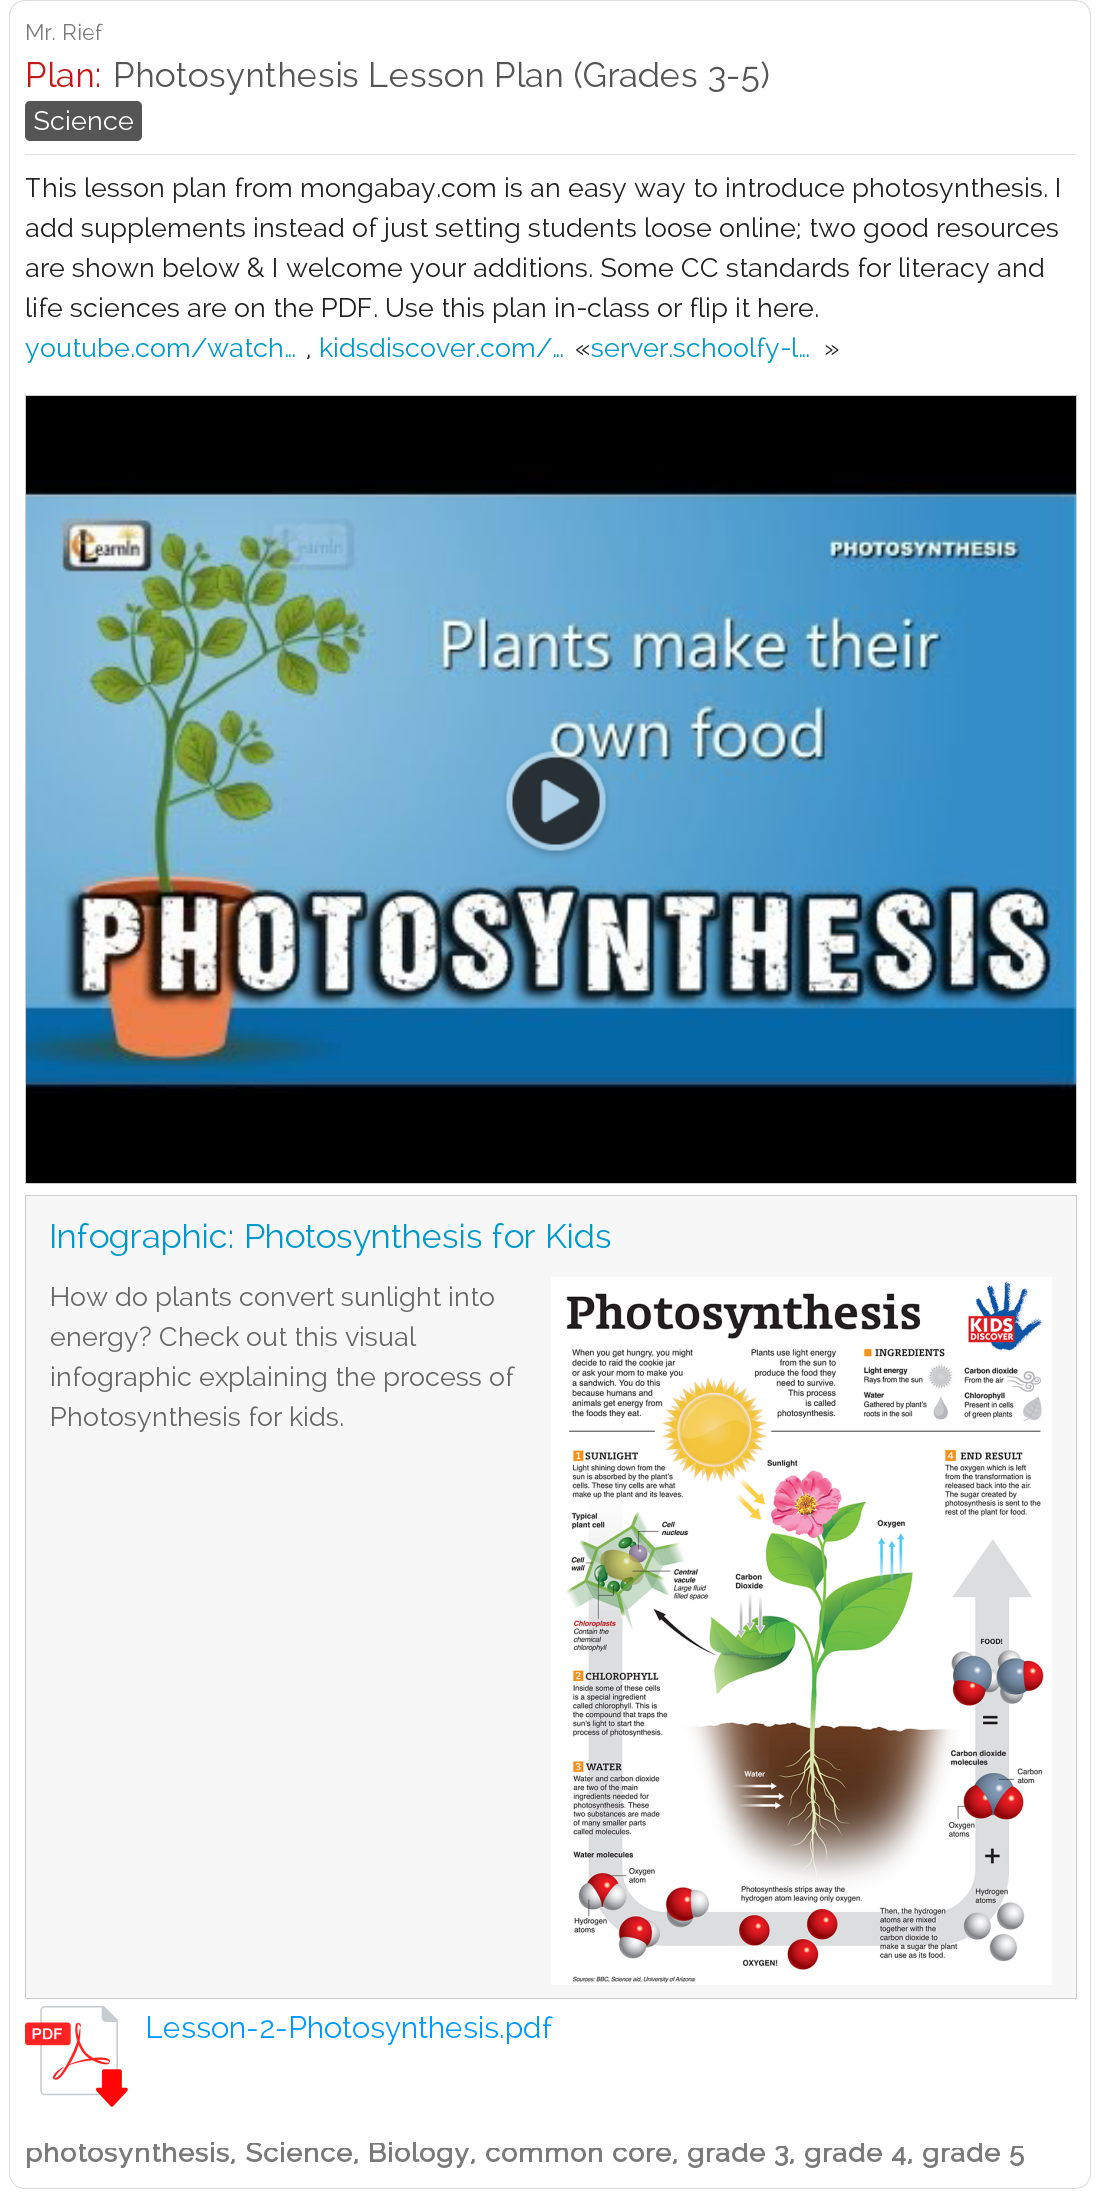 Free Photosynthesis Lesson Plan (Grades 3, 4, 5) Video